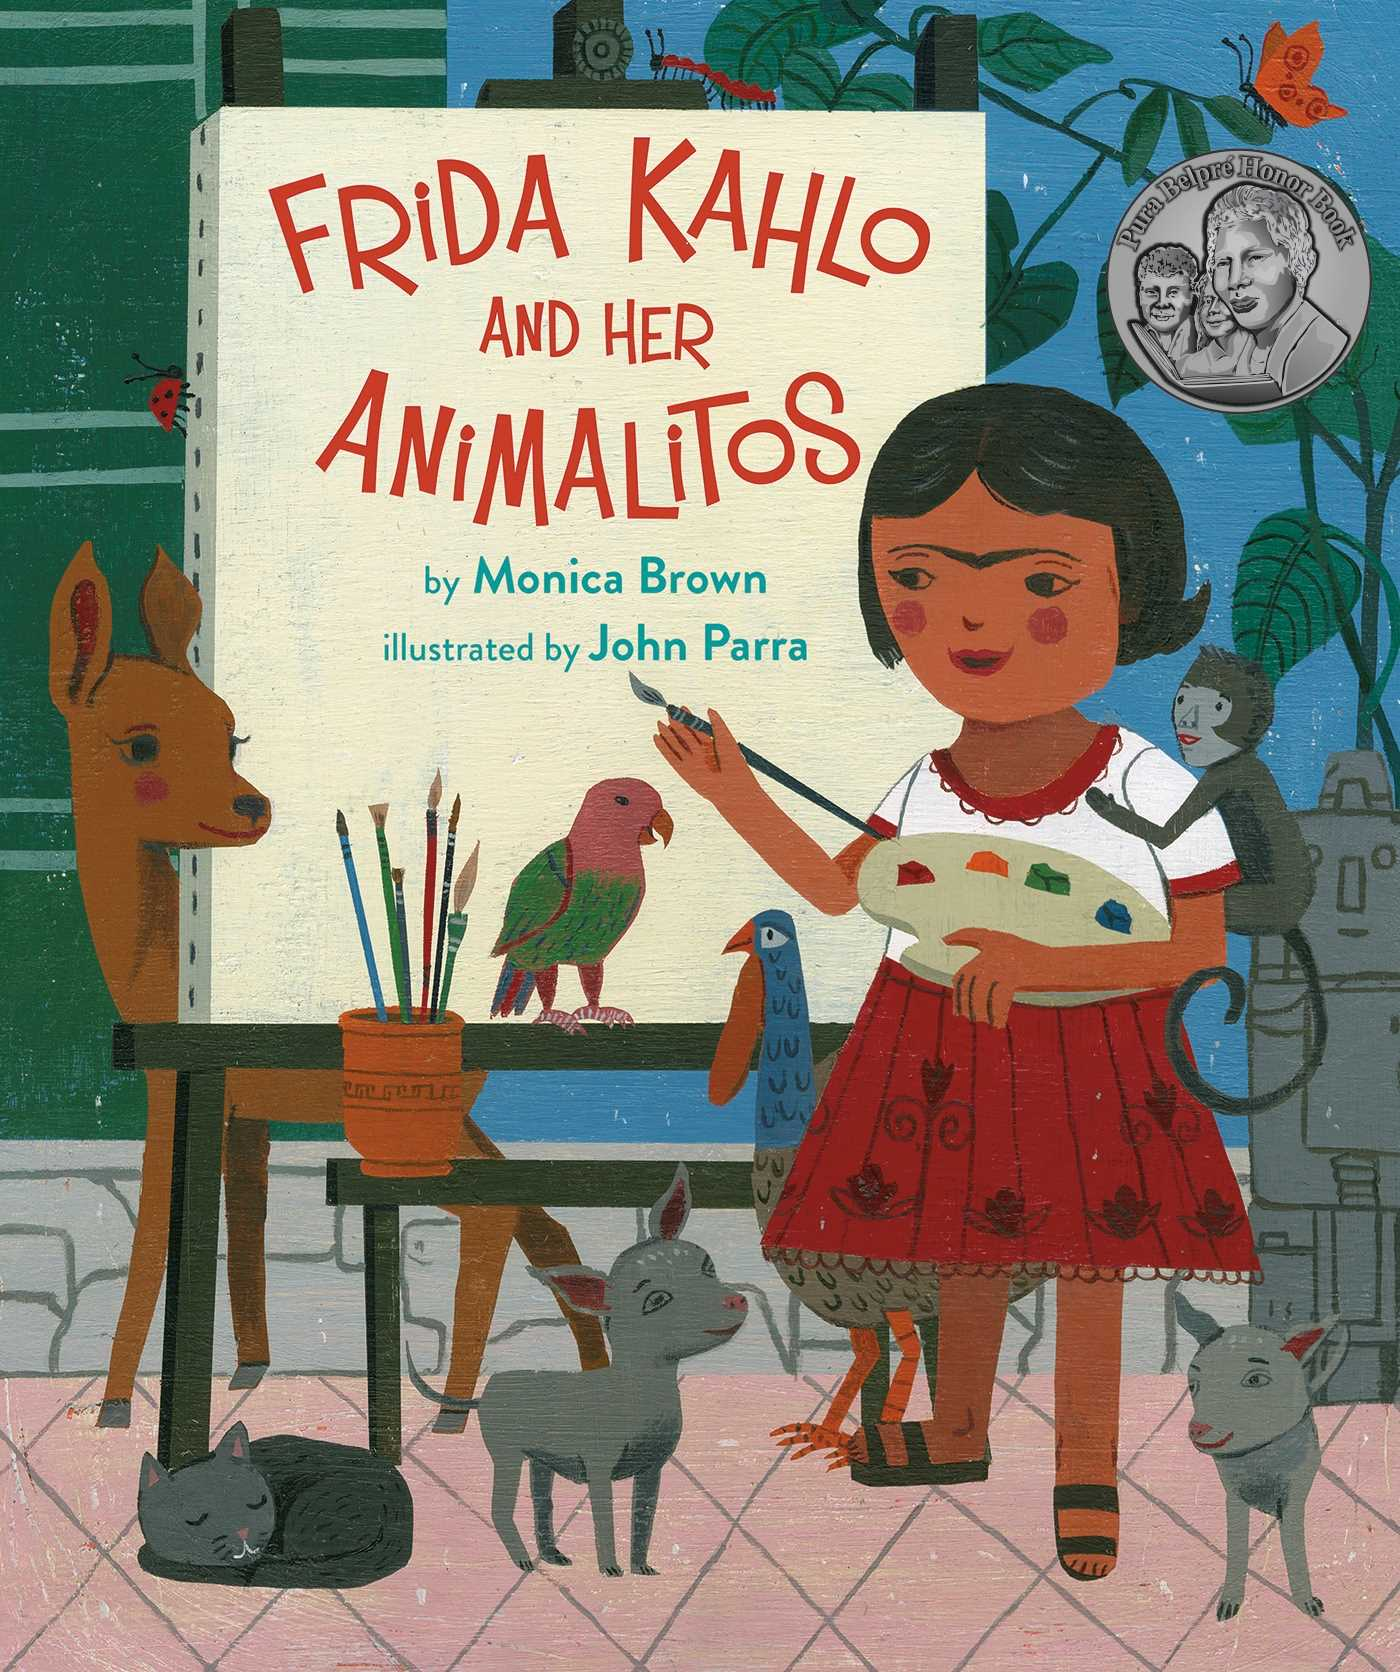 Frida kahlo and her animalitos 9780735842694 hr